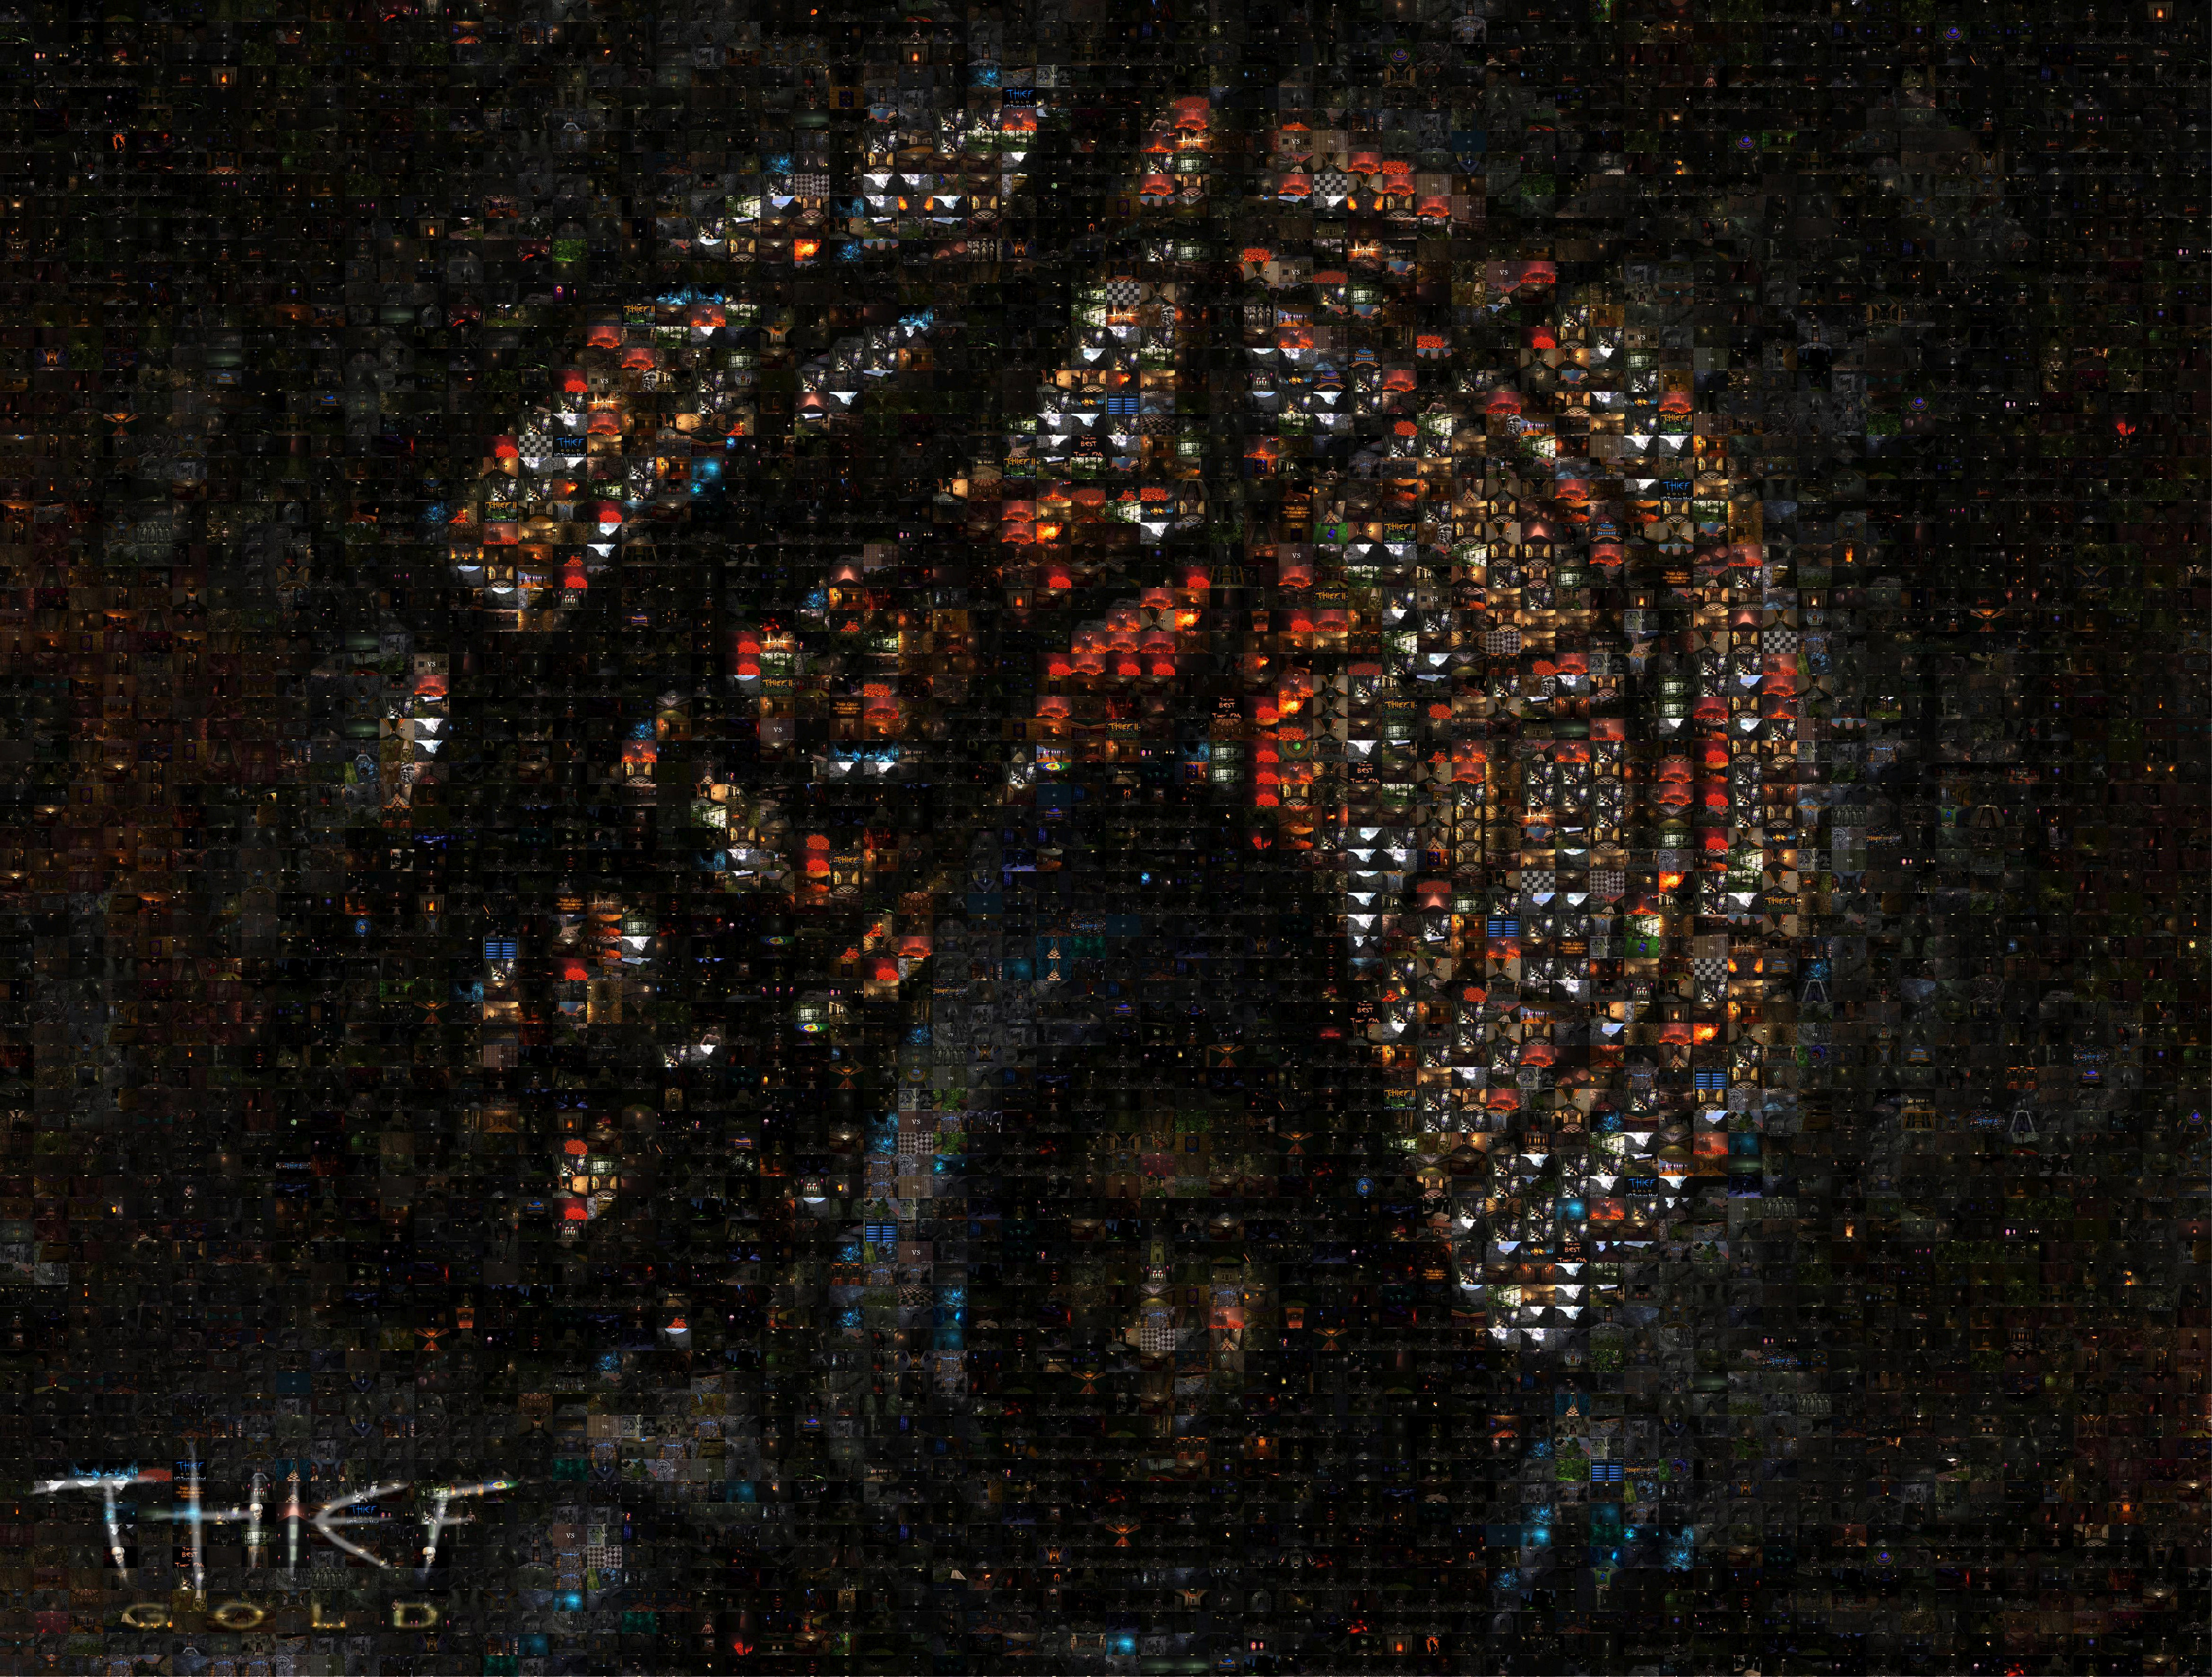 thief gold hd mosaic wallpaper image - mod db